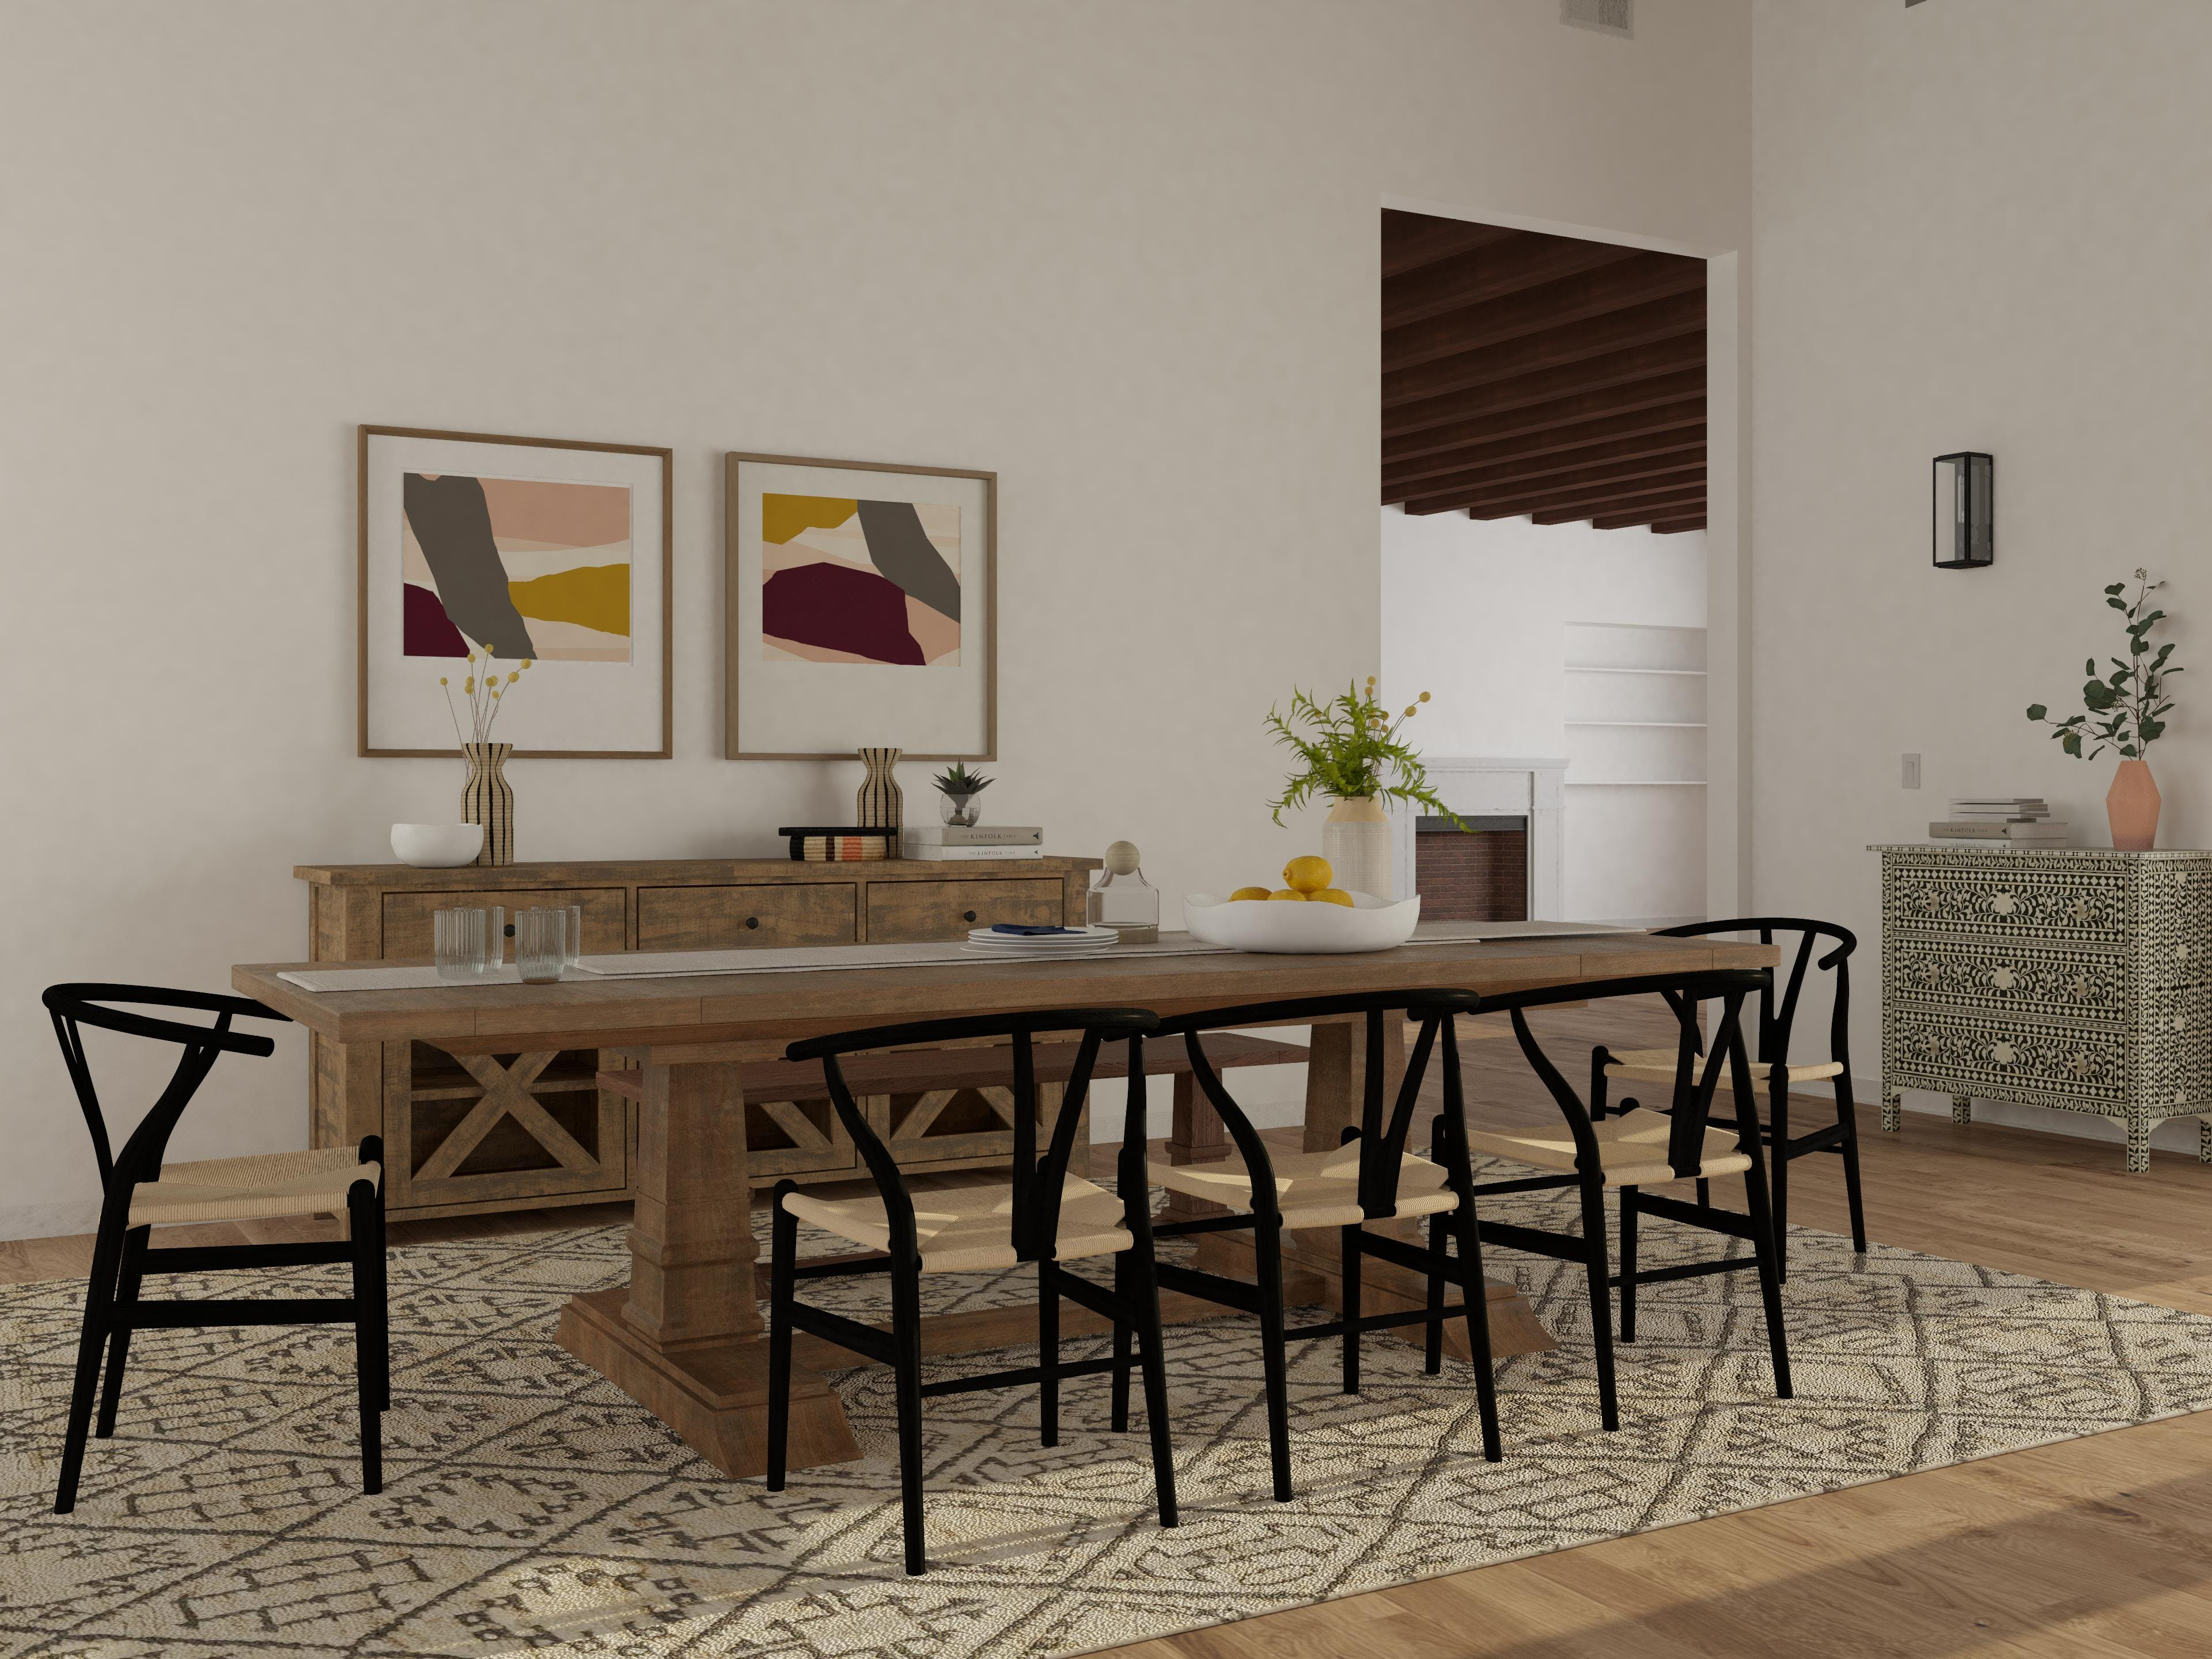 High Contrast Dining Room Brings Calm